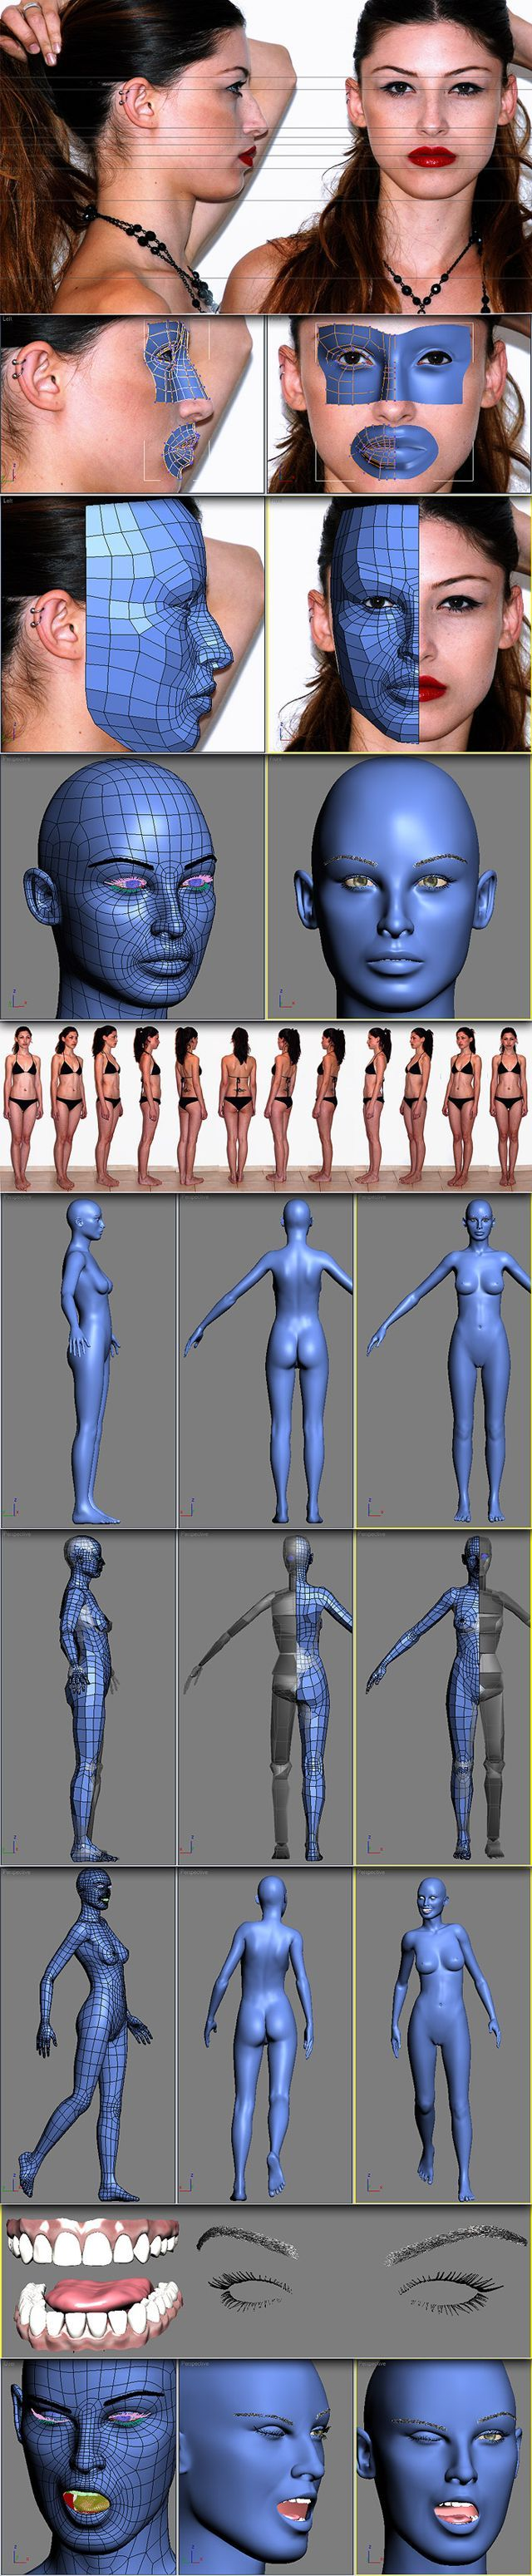 Female Face/Body topology